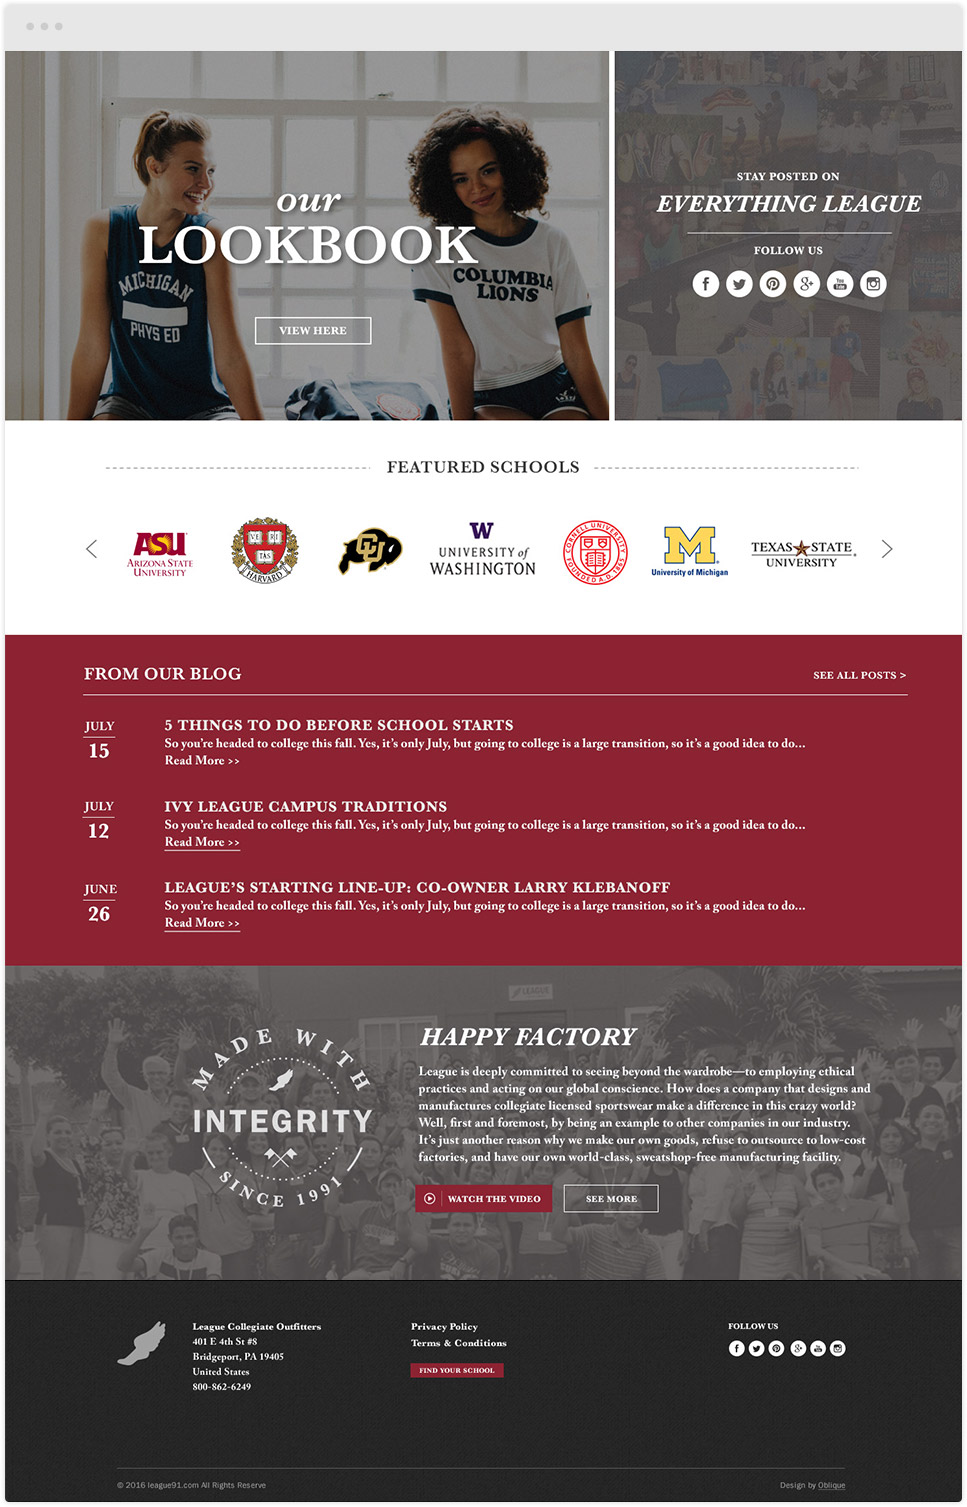 league collegiate outfitters lookbook